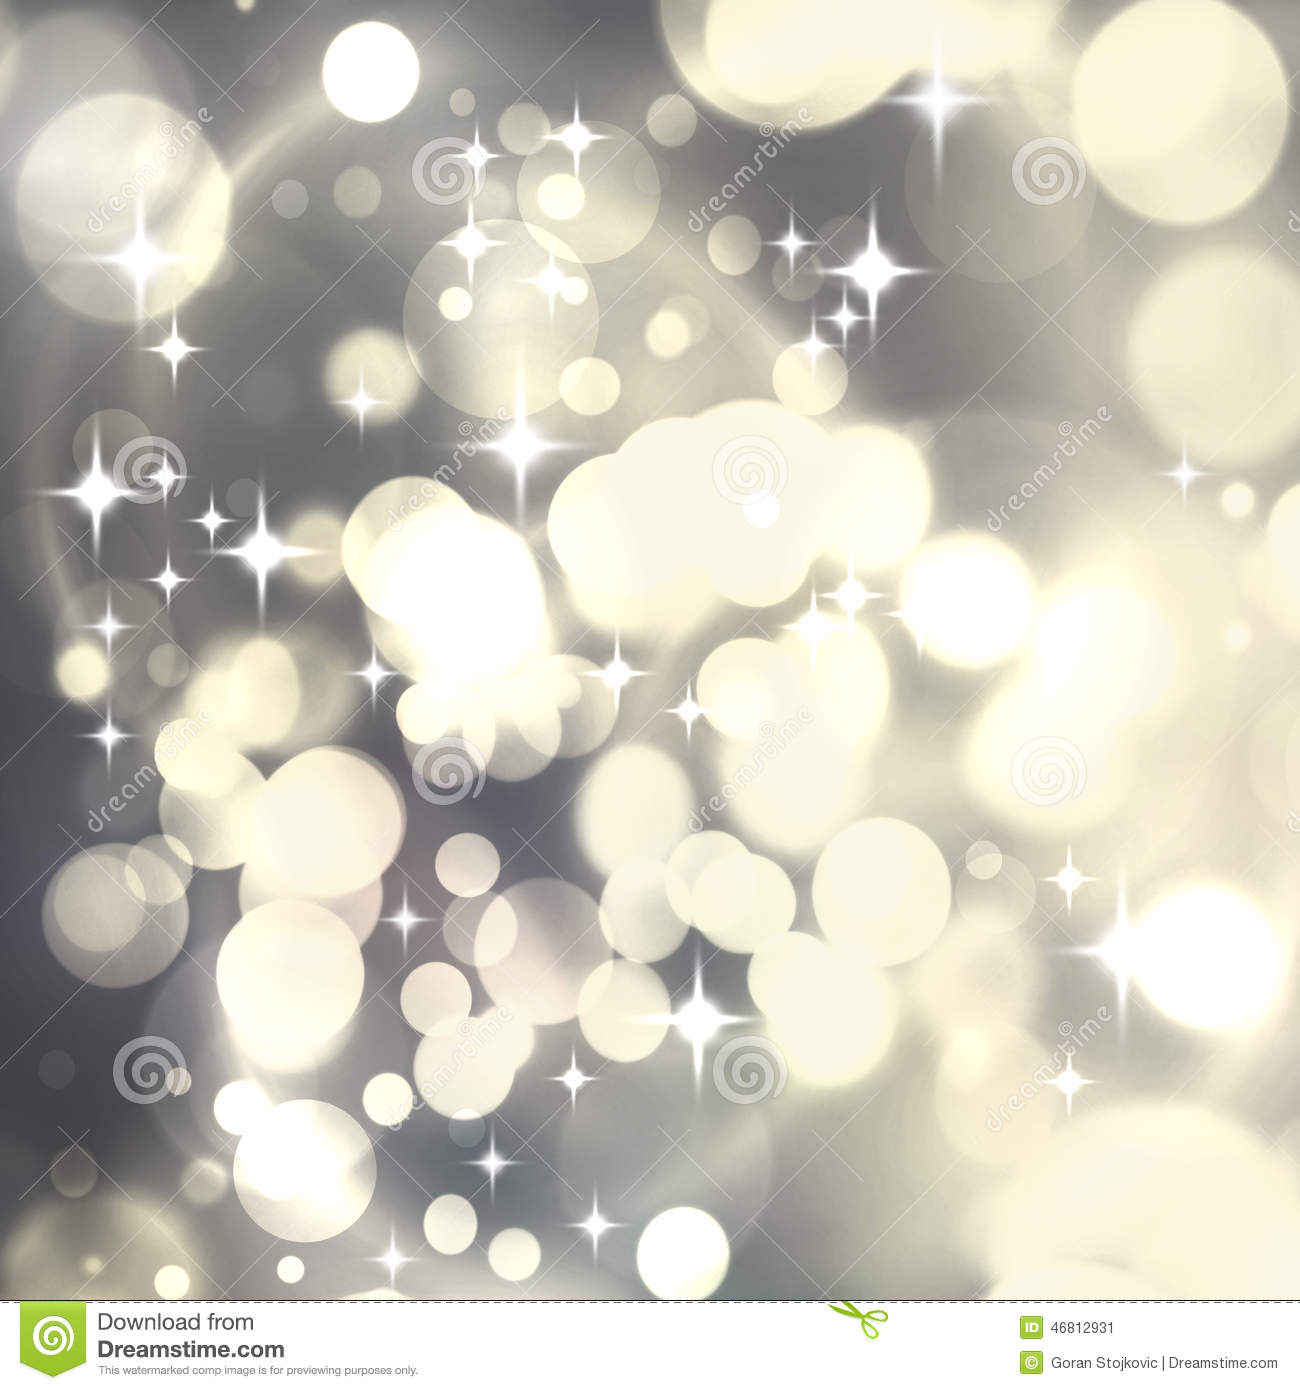 Light Silver Luxury Abstract Christmas Background With